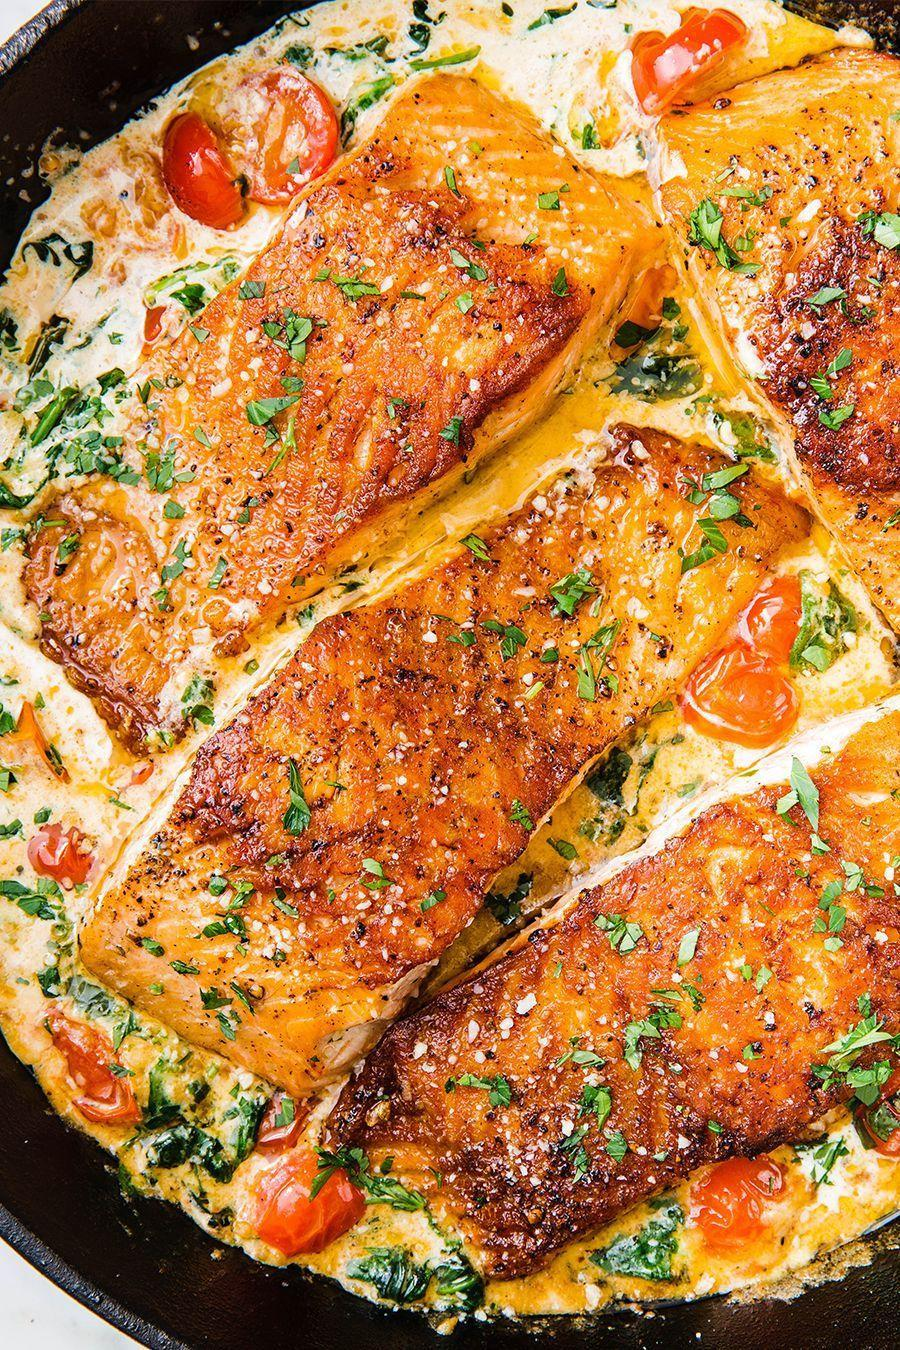 """<p>Your new favorite salmon recipe.</p><p>Get the recipe from <a href=""""https://www.delish.com/cooking/recipe-ideas/recipes/a58412/tuscan-butter-salmon-recipe/"""" rel=""""nofollow noopener"""" target=""""_blank"""" data-ylk=""""slk:Delish"""" class=""""link rapid-noclick-resp"""">Delish</a>. </p>"""